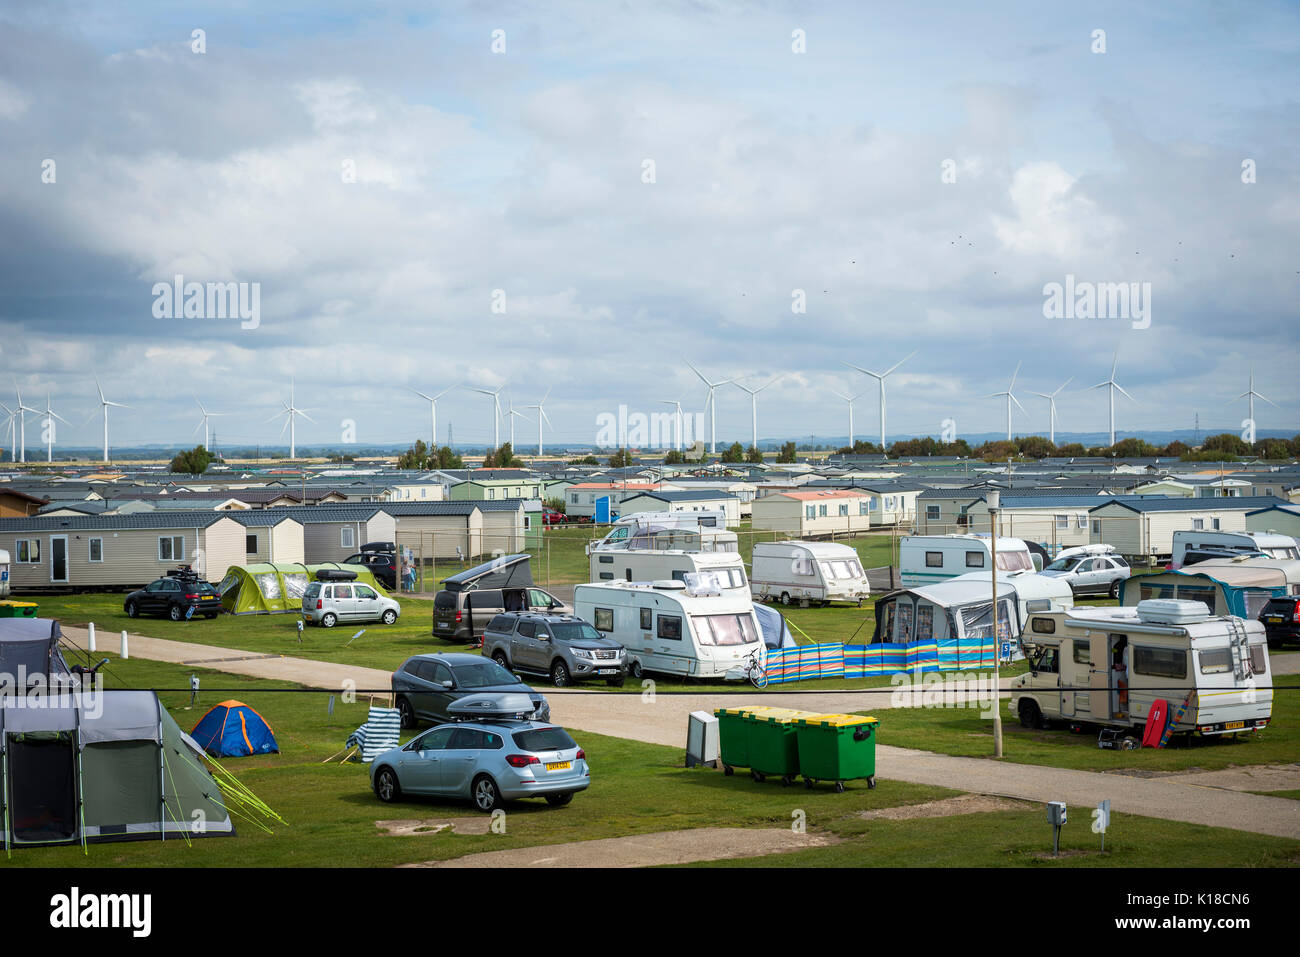 Camping à Camber Sands, East Sussex, UK Photo Stock